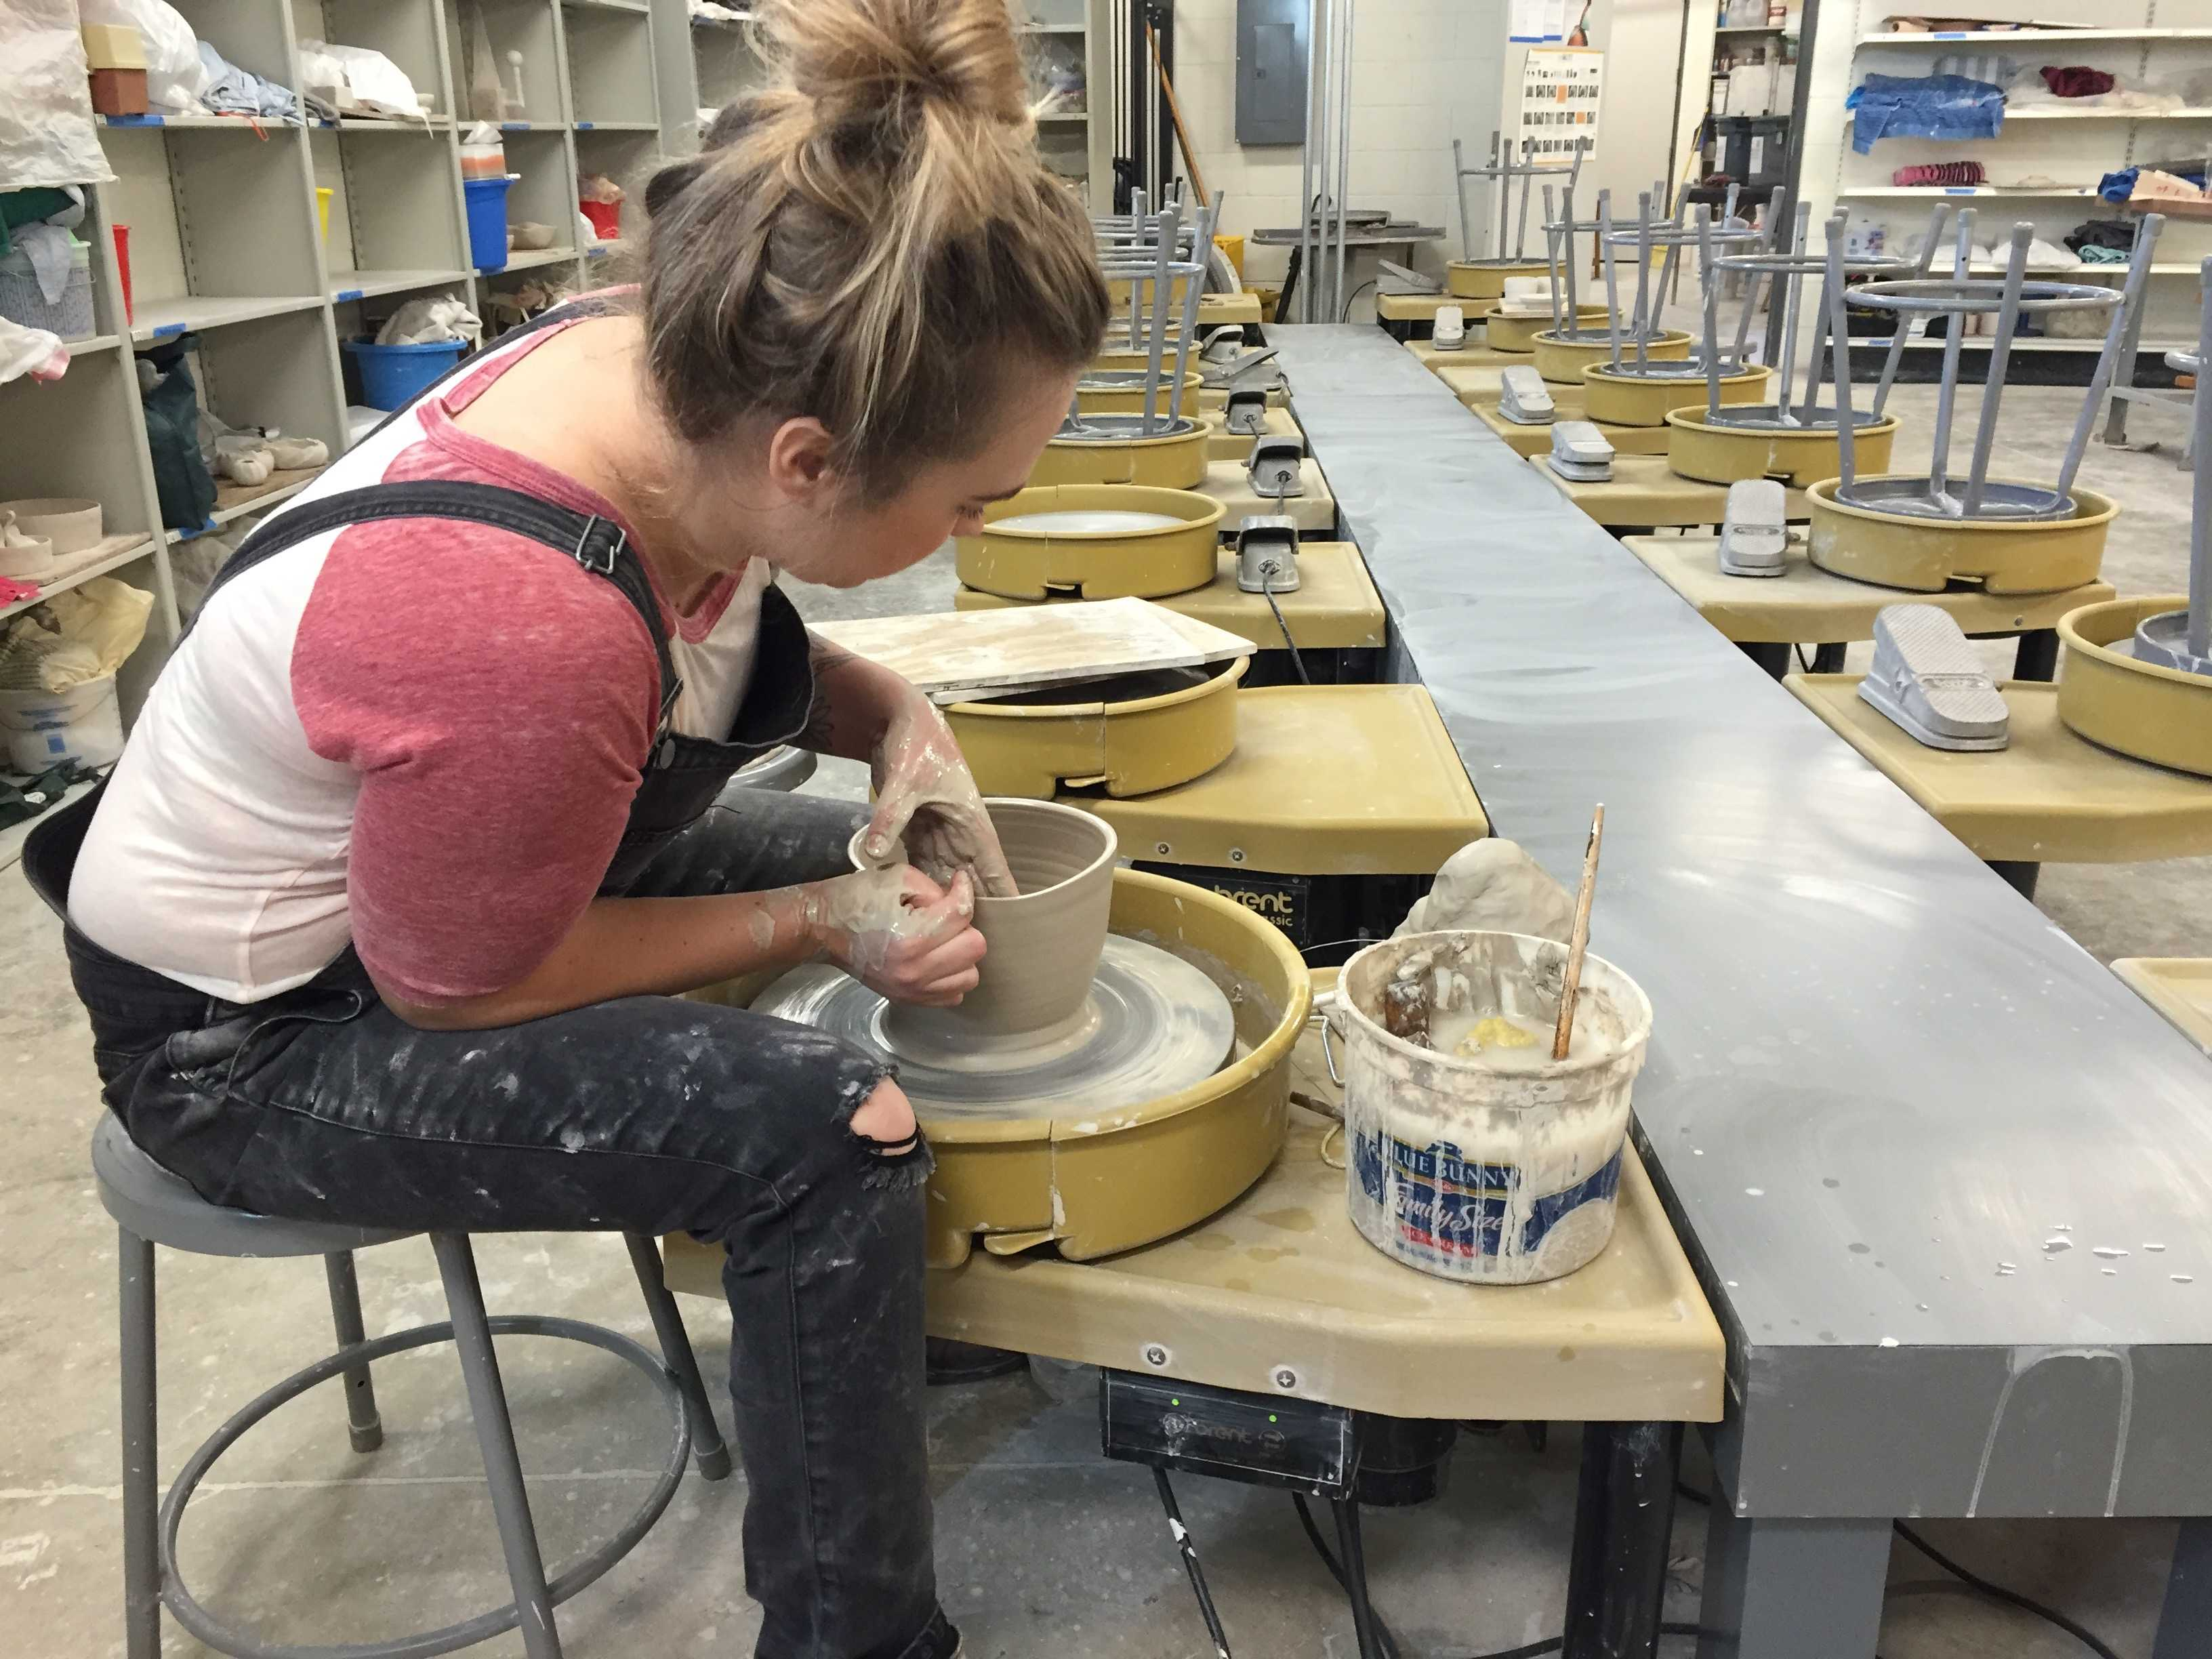 Tracey Tanner: Ceramics student with big plans